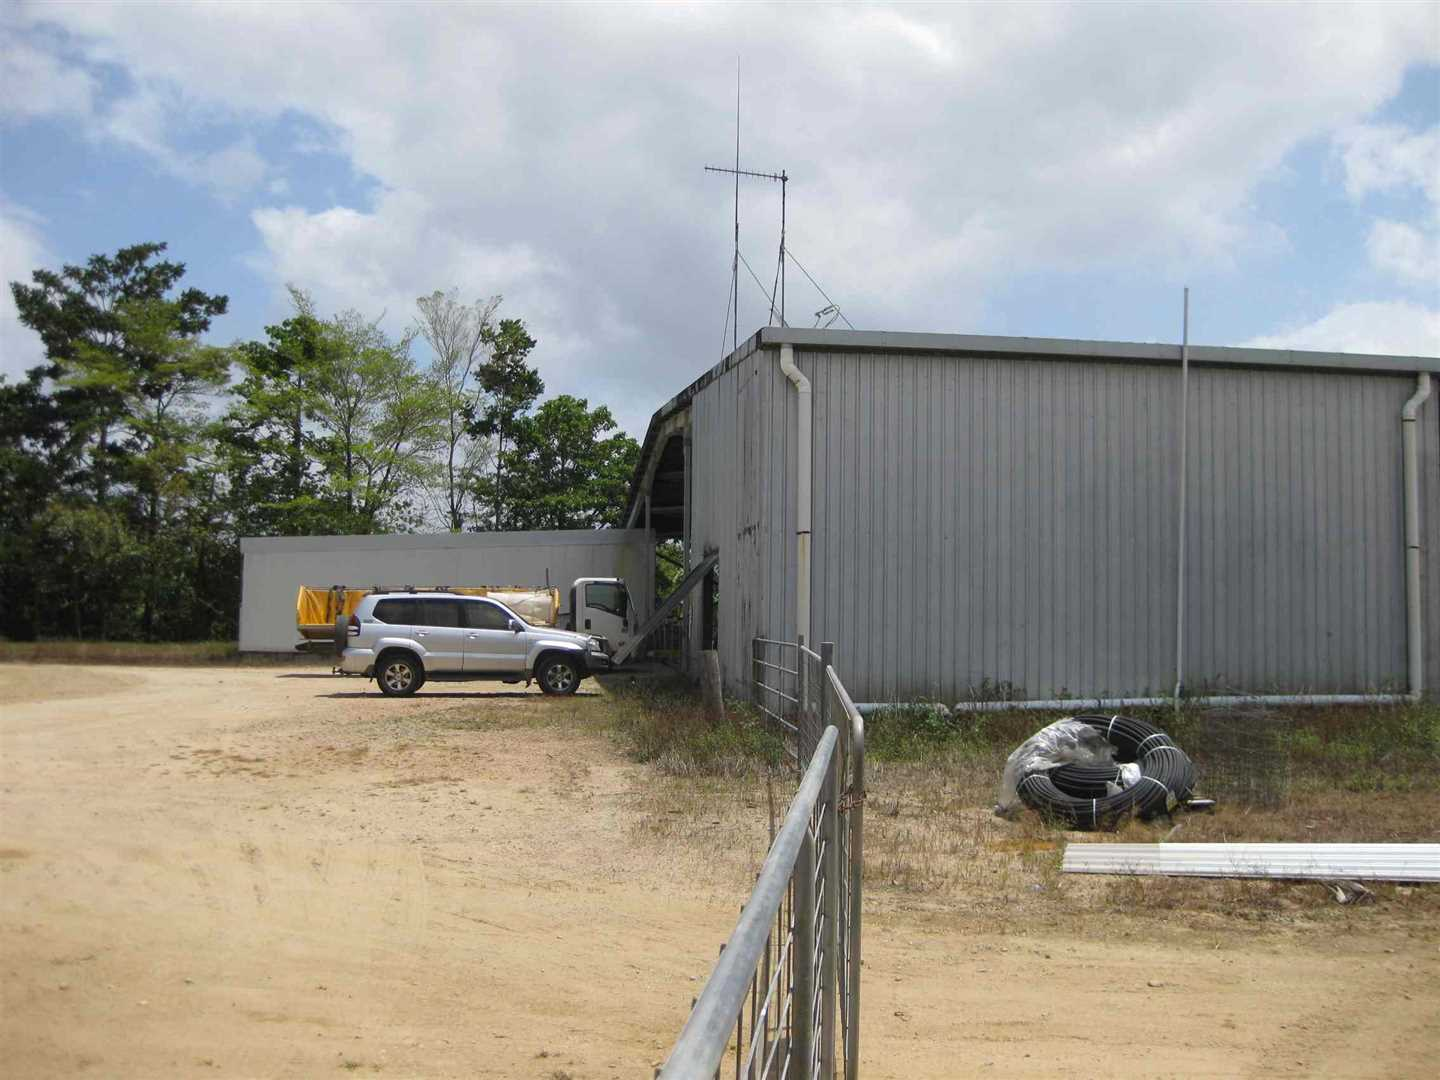 View of part of packing shed, photo 2